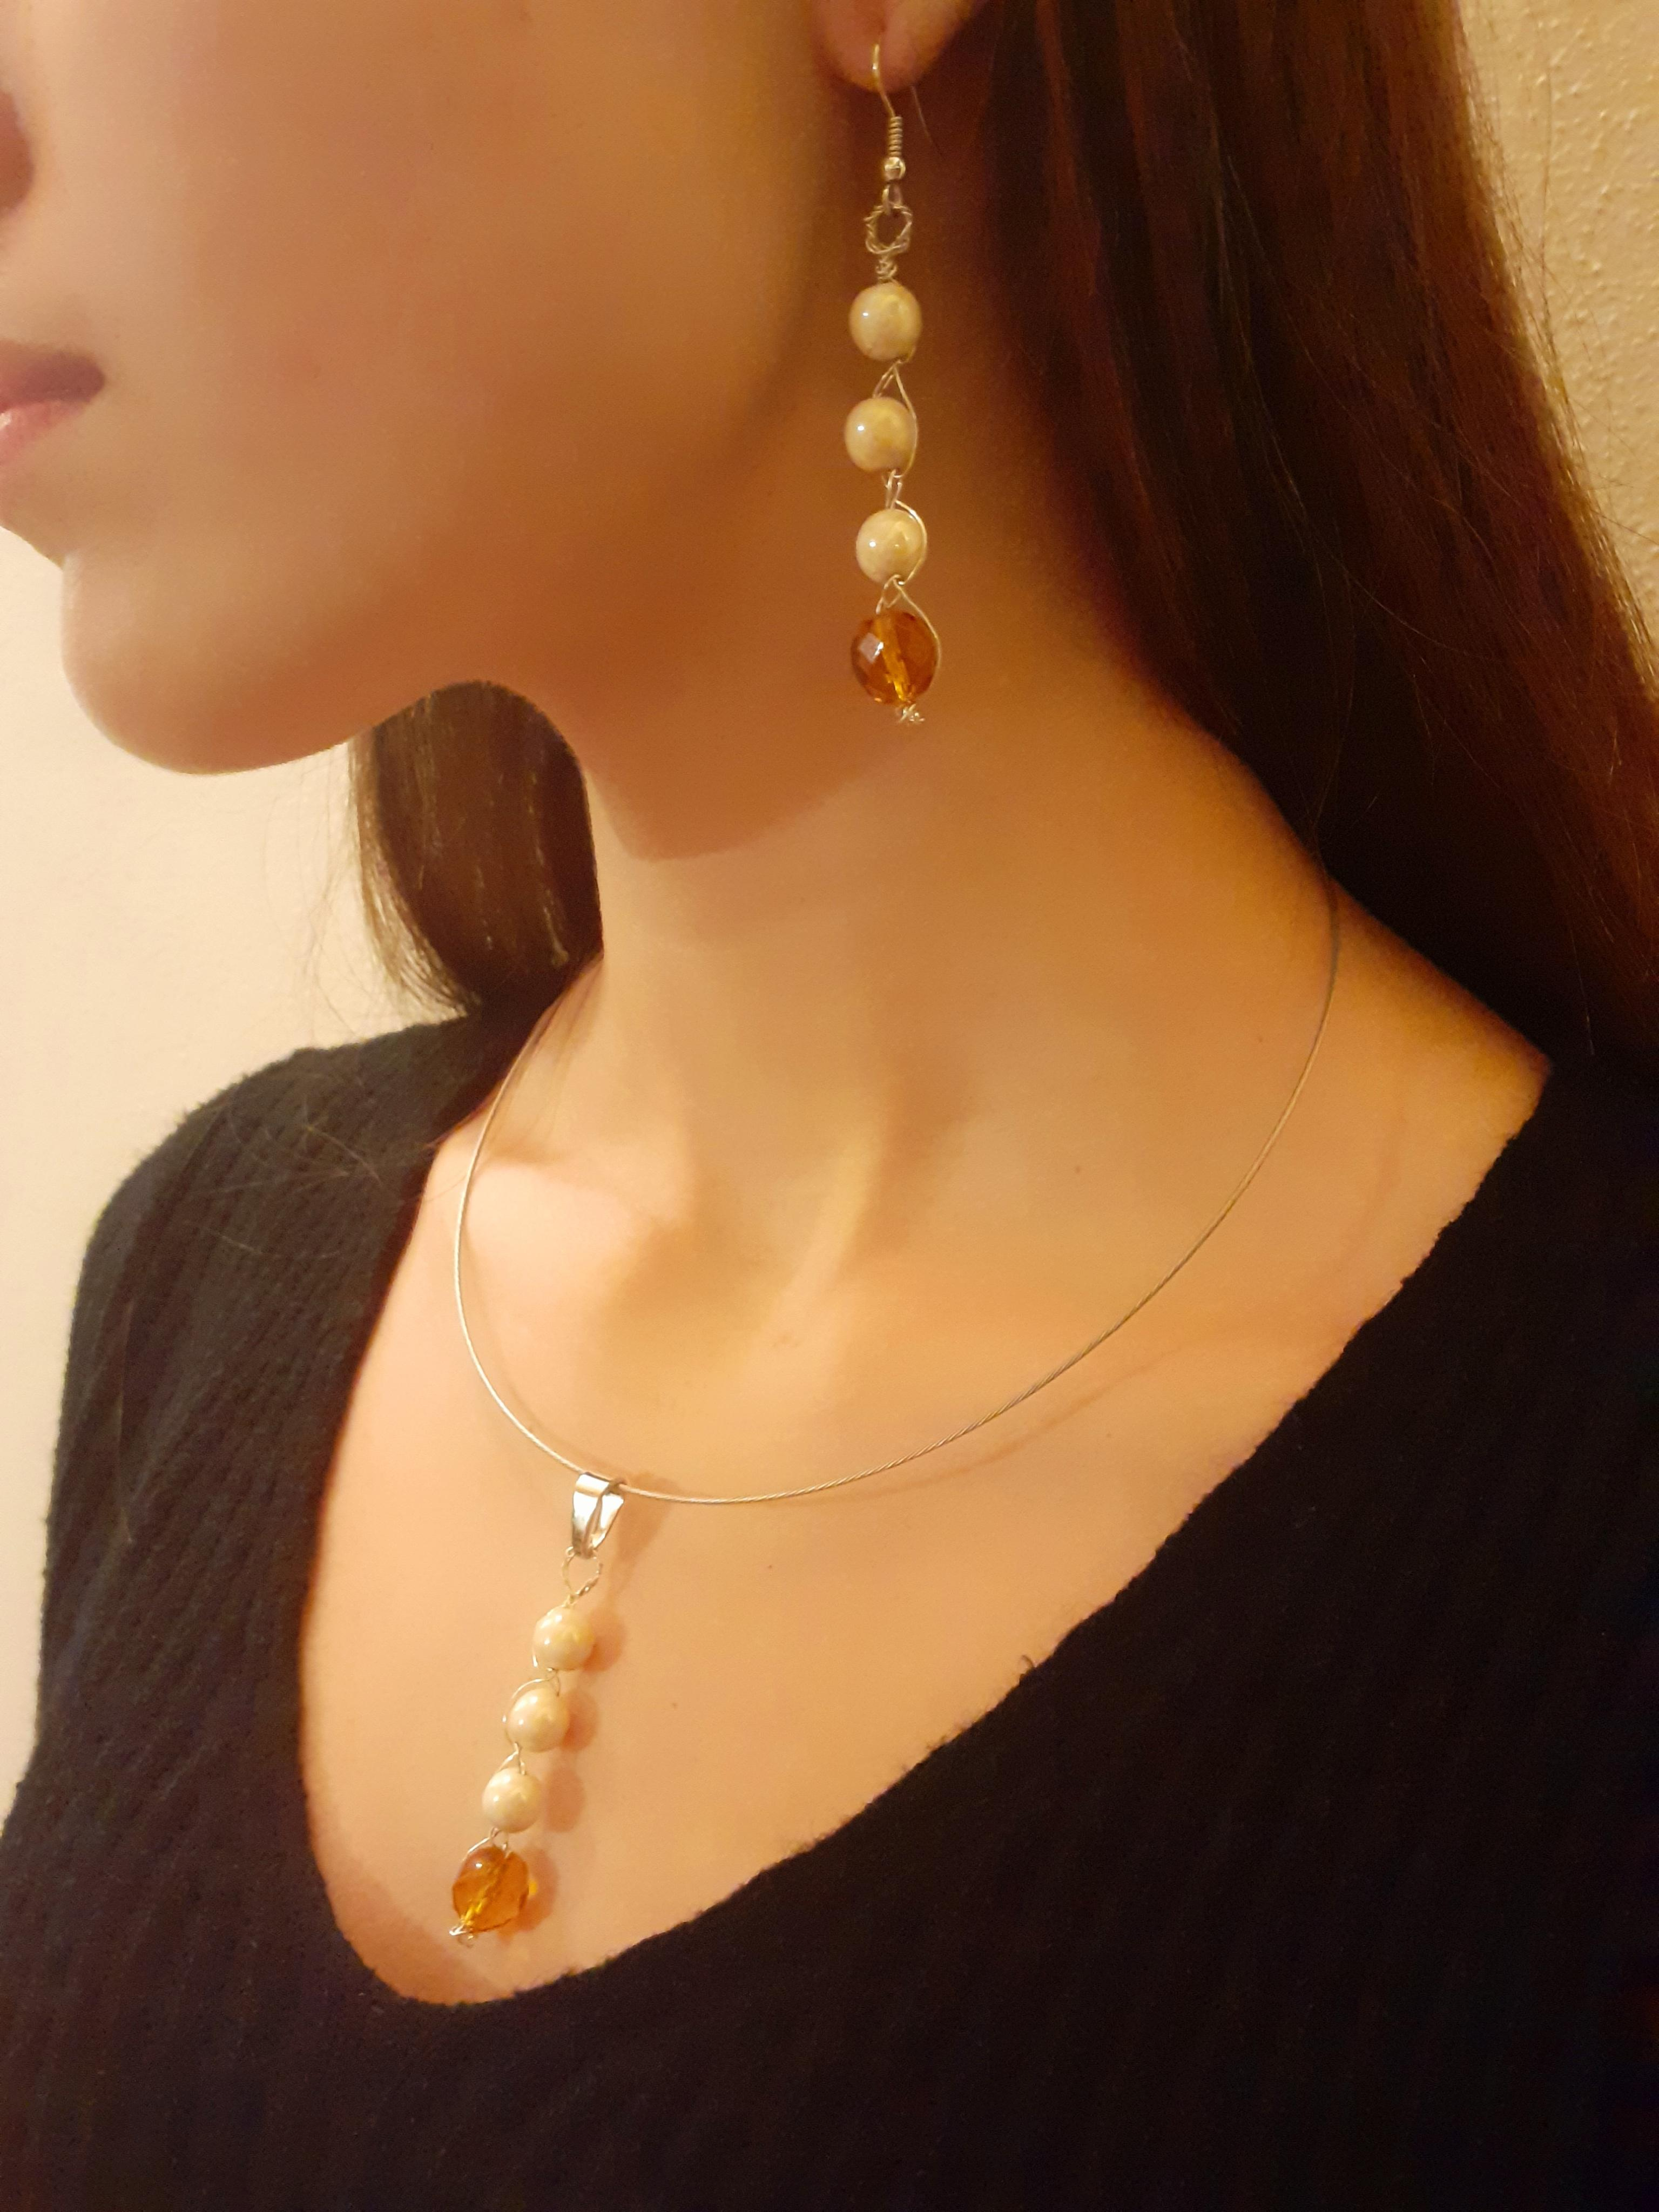 Matching necklace and earrings | Handmade jewellery buy online